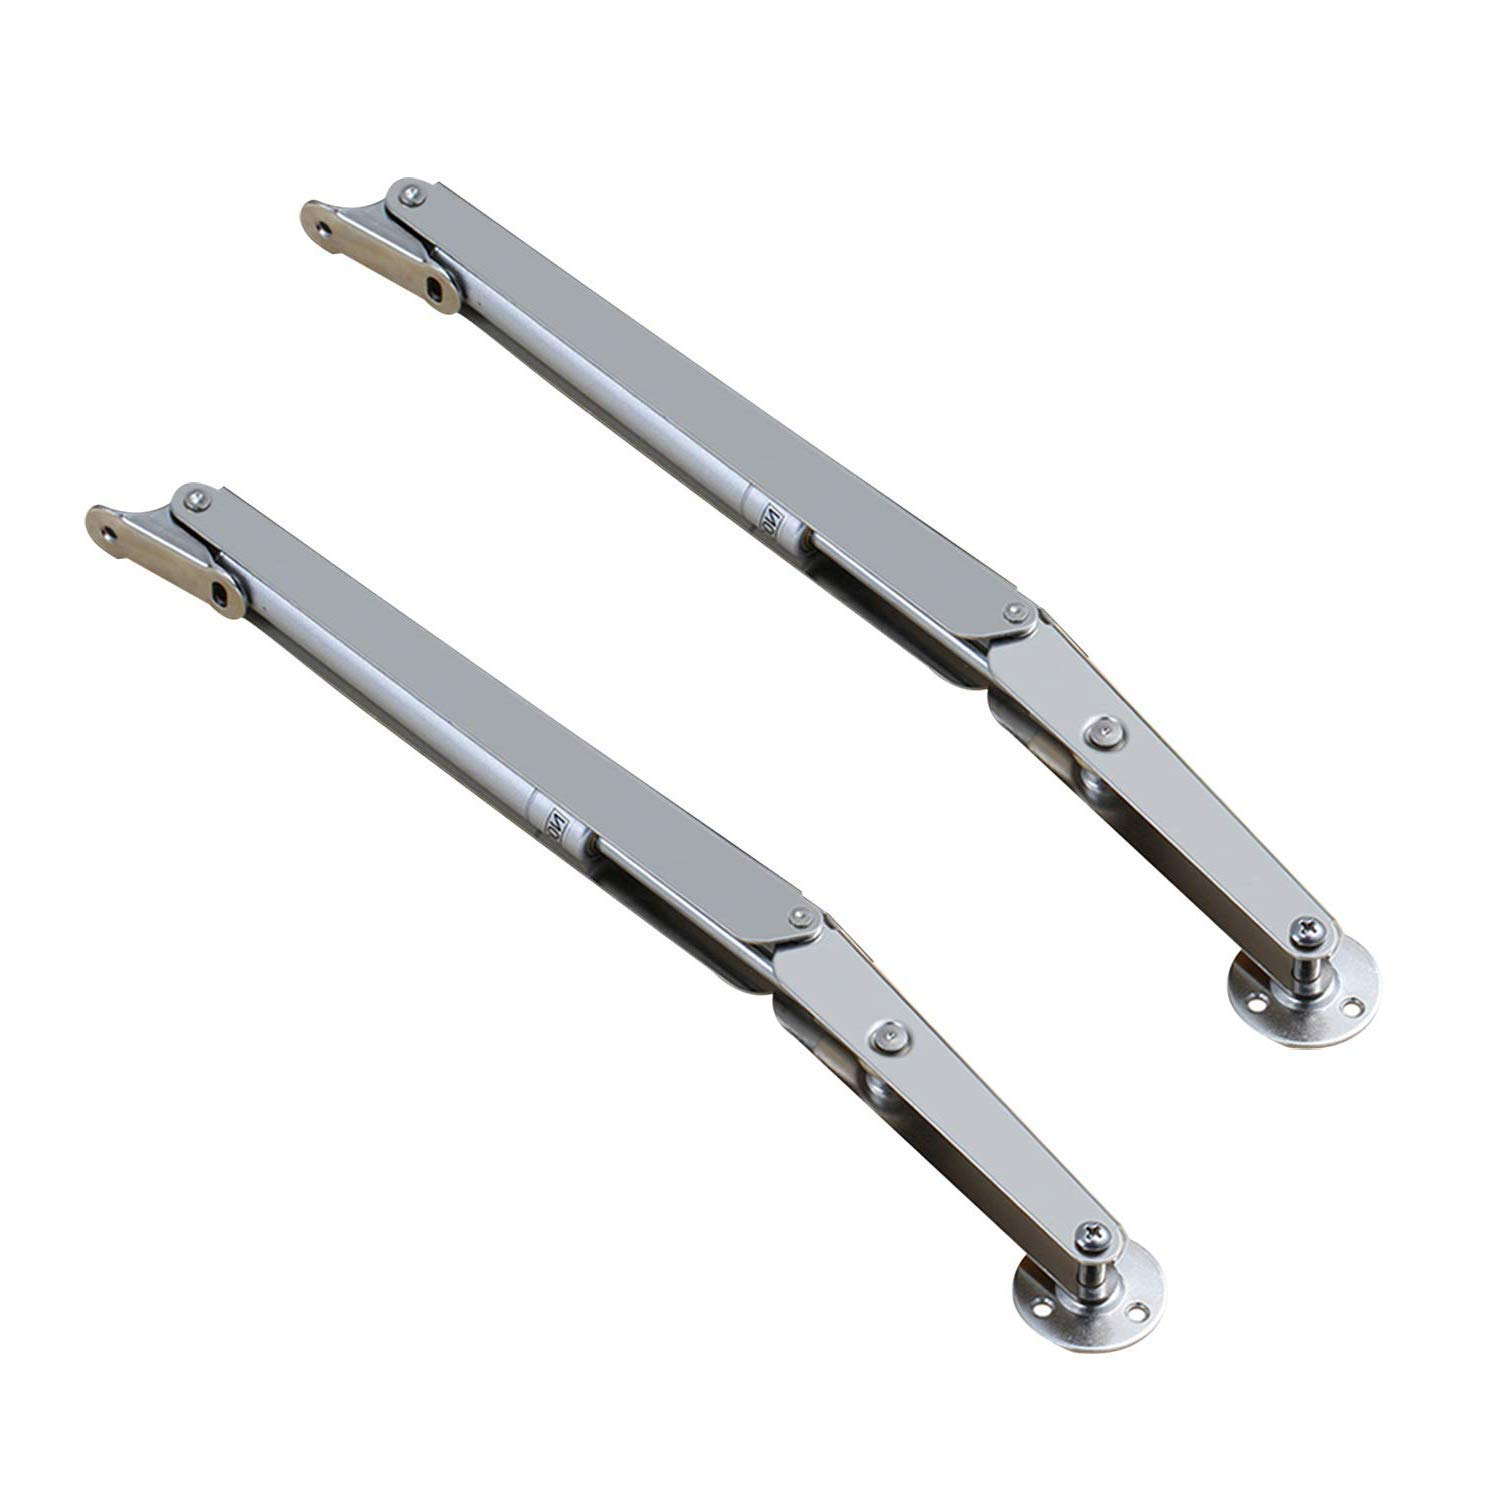 Gas Springs Lid Support Hinge Heavy Duty Lid Stay Hinge Support Cabinet Door Lift Pneumatic Supports Cupboard Desk Tatami Hinges Hydraulic Support Cabinet Hinge Close Lid Safety Gas Spring Stay Strut